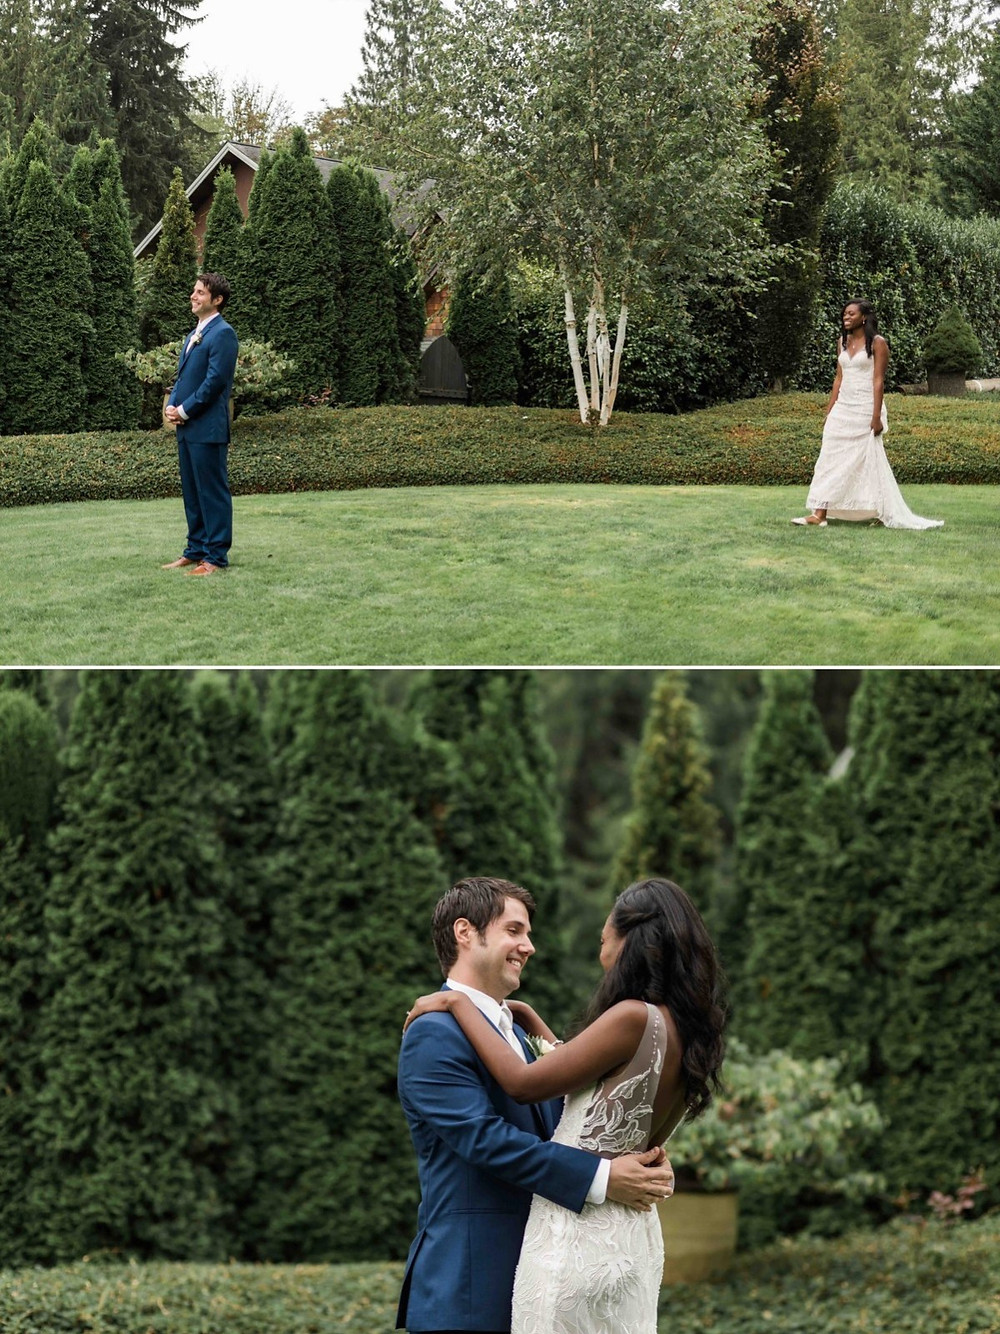 Photos of a bride and groom during their first look before their wedding at Green Gates at Flowing Lake, a wedding venue in Snohomish near Seattle, WA. | My Snohomish Wedding | Snohomish Wedding Planning